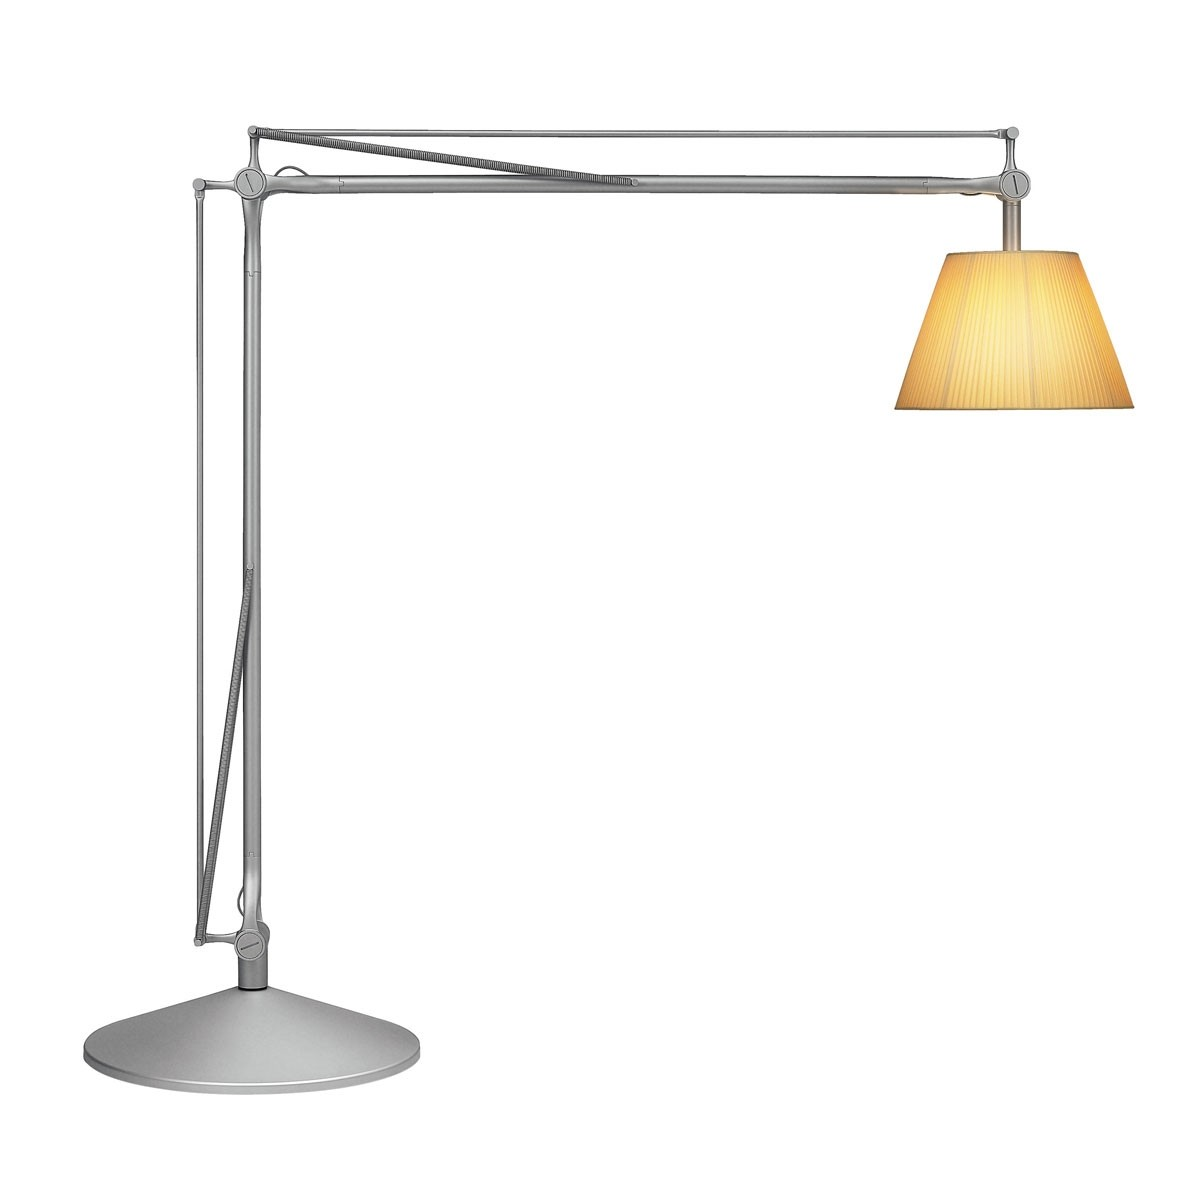 Superarchimoon lámpara of Floor Lamp E27 HSGS dimmable Silver Matt Diffuser tela